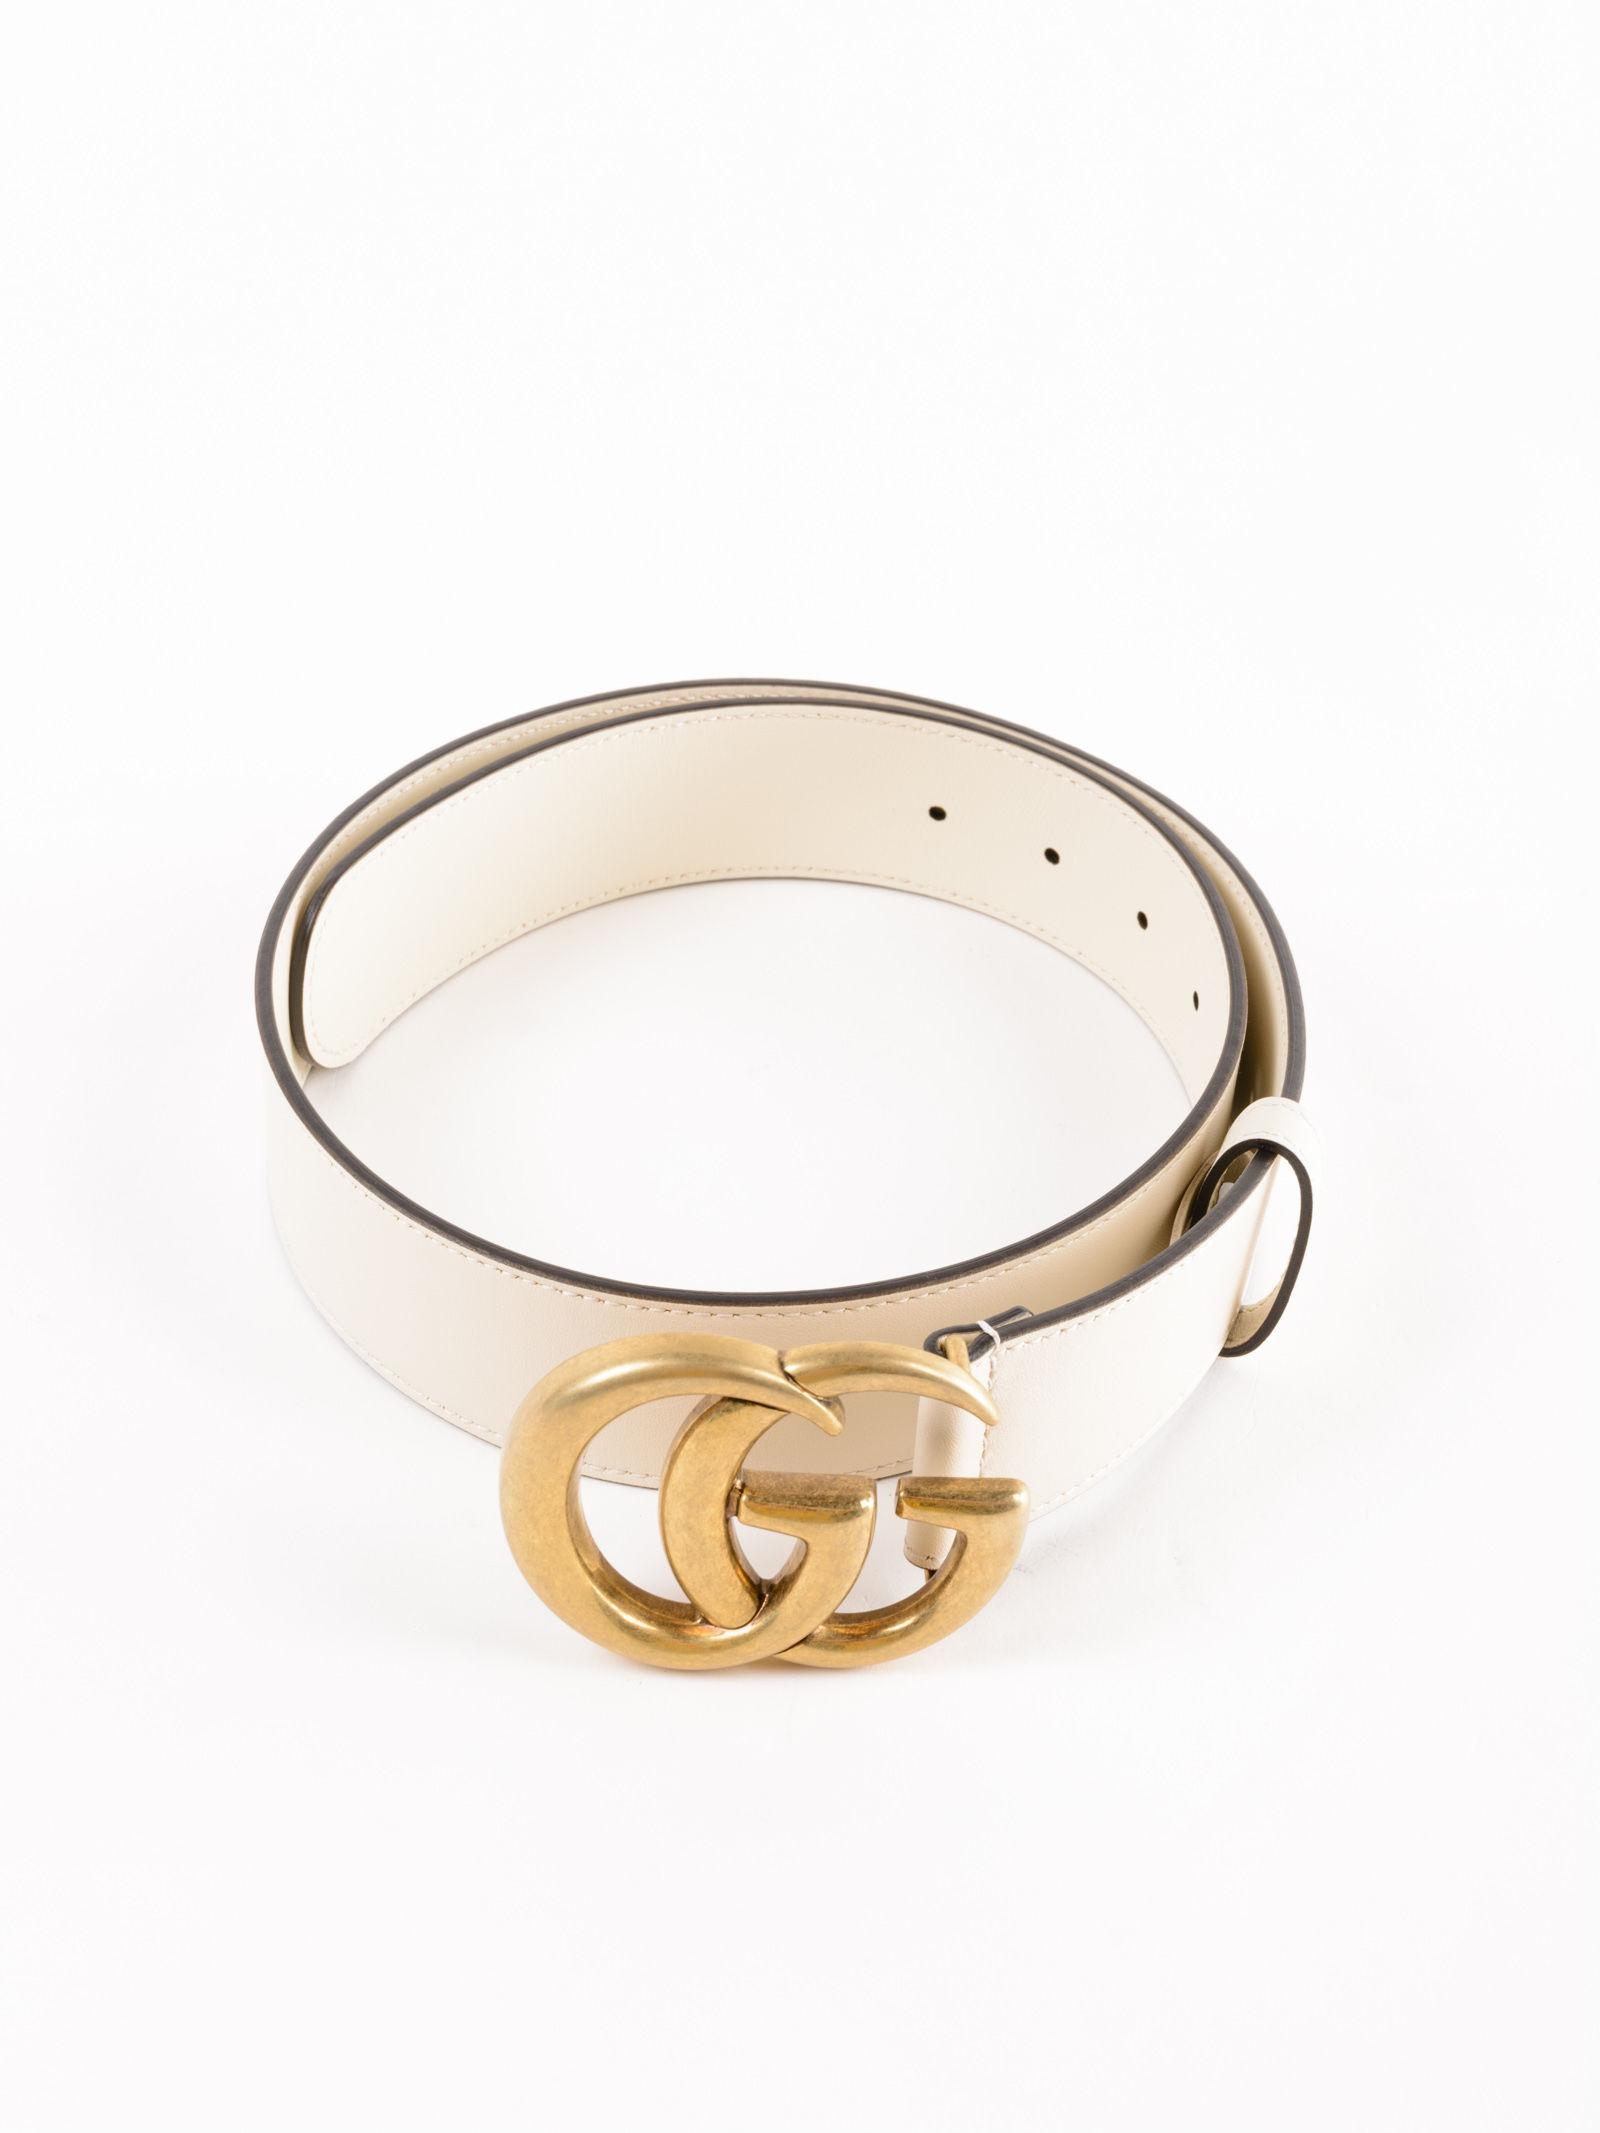 98b9ce503a9 Lyst - Gucci W Gg Marmont Belt 40mm in White